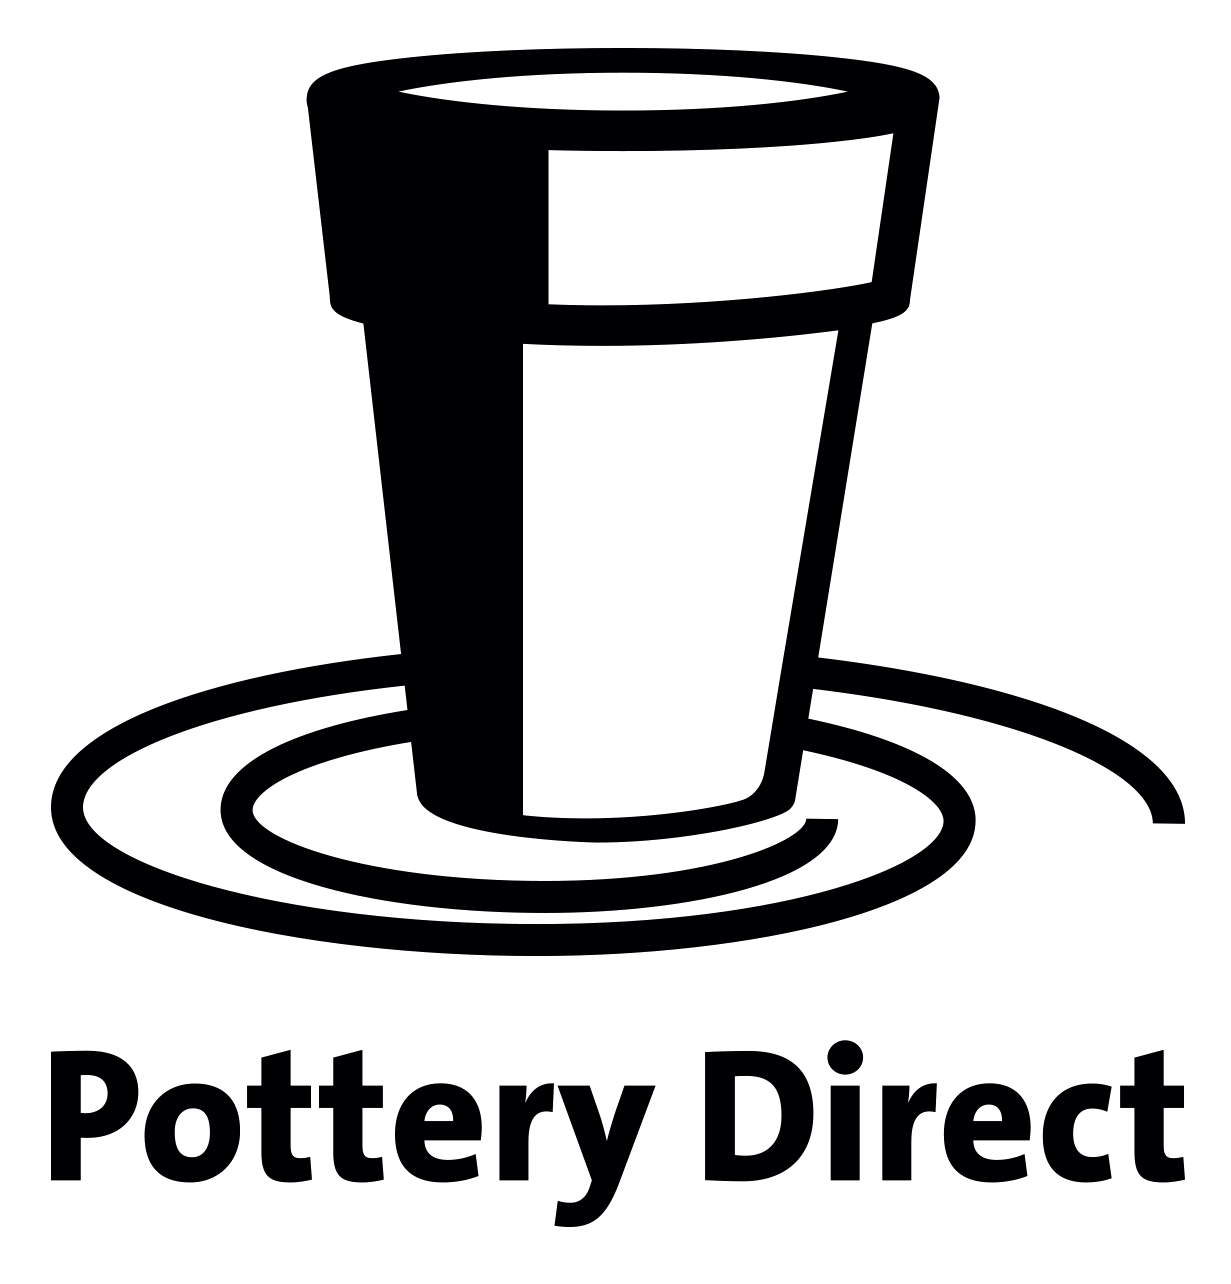 Pottery Direct